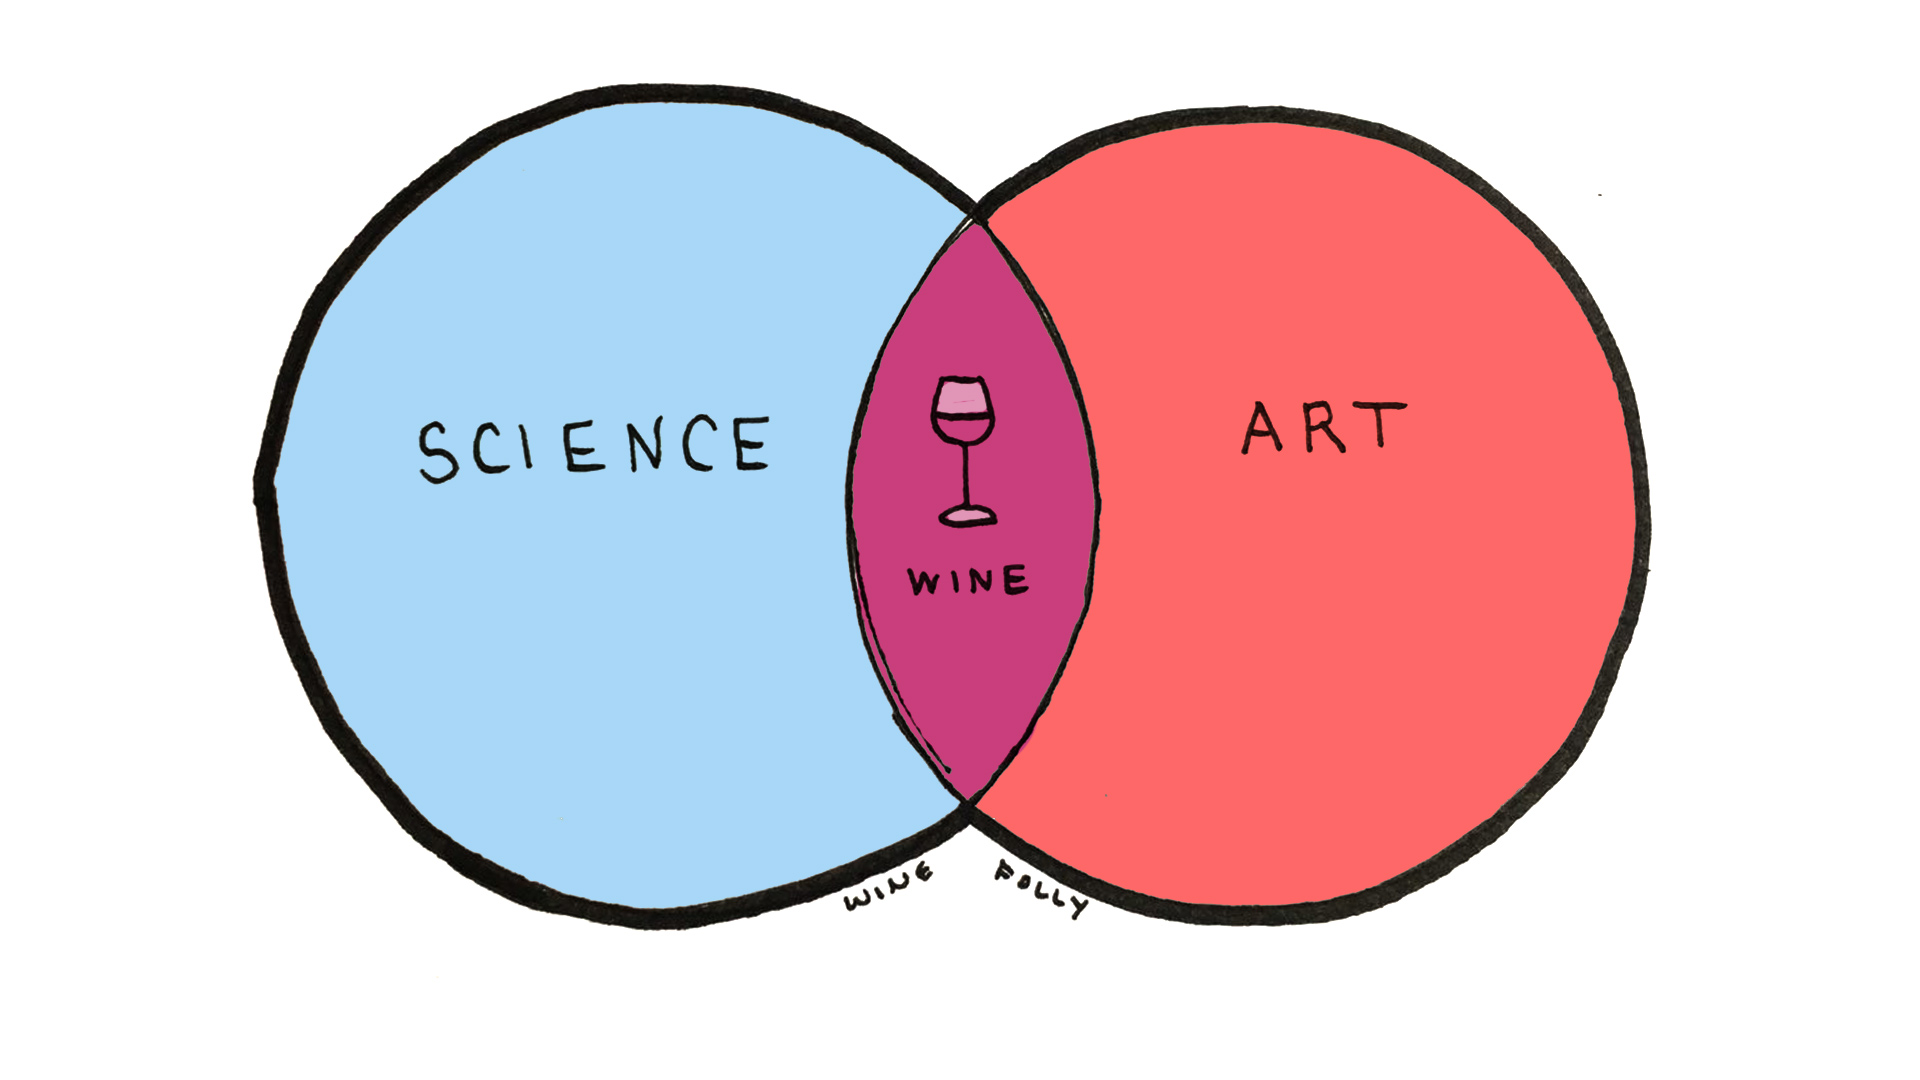 wine-art-science-winefolly